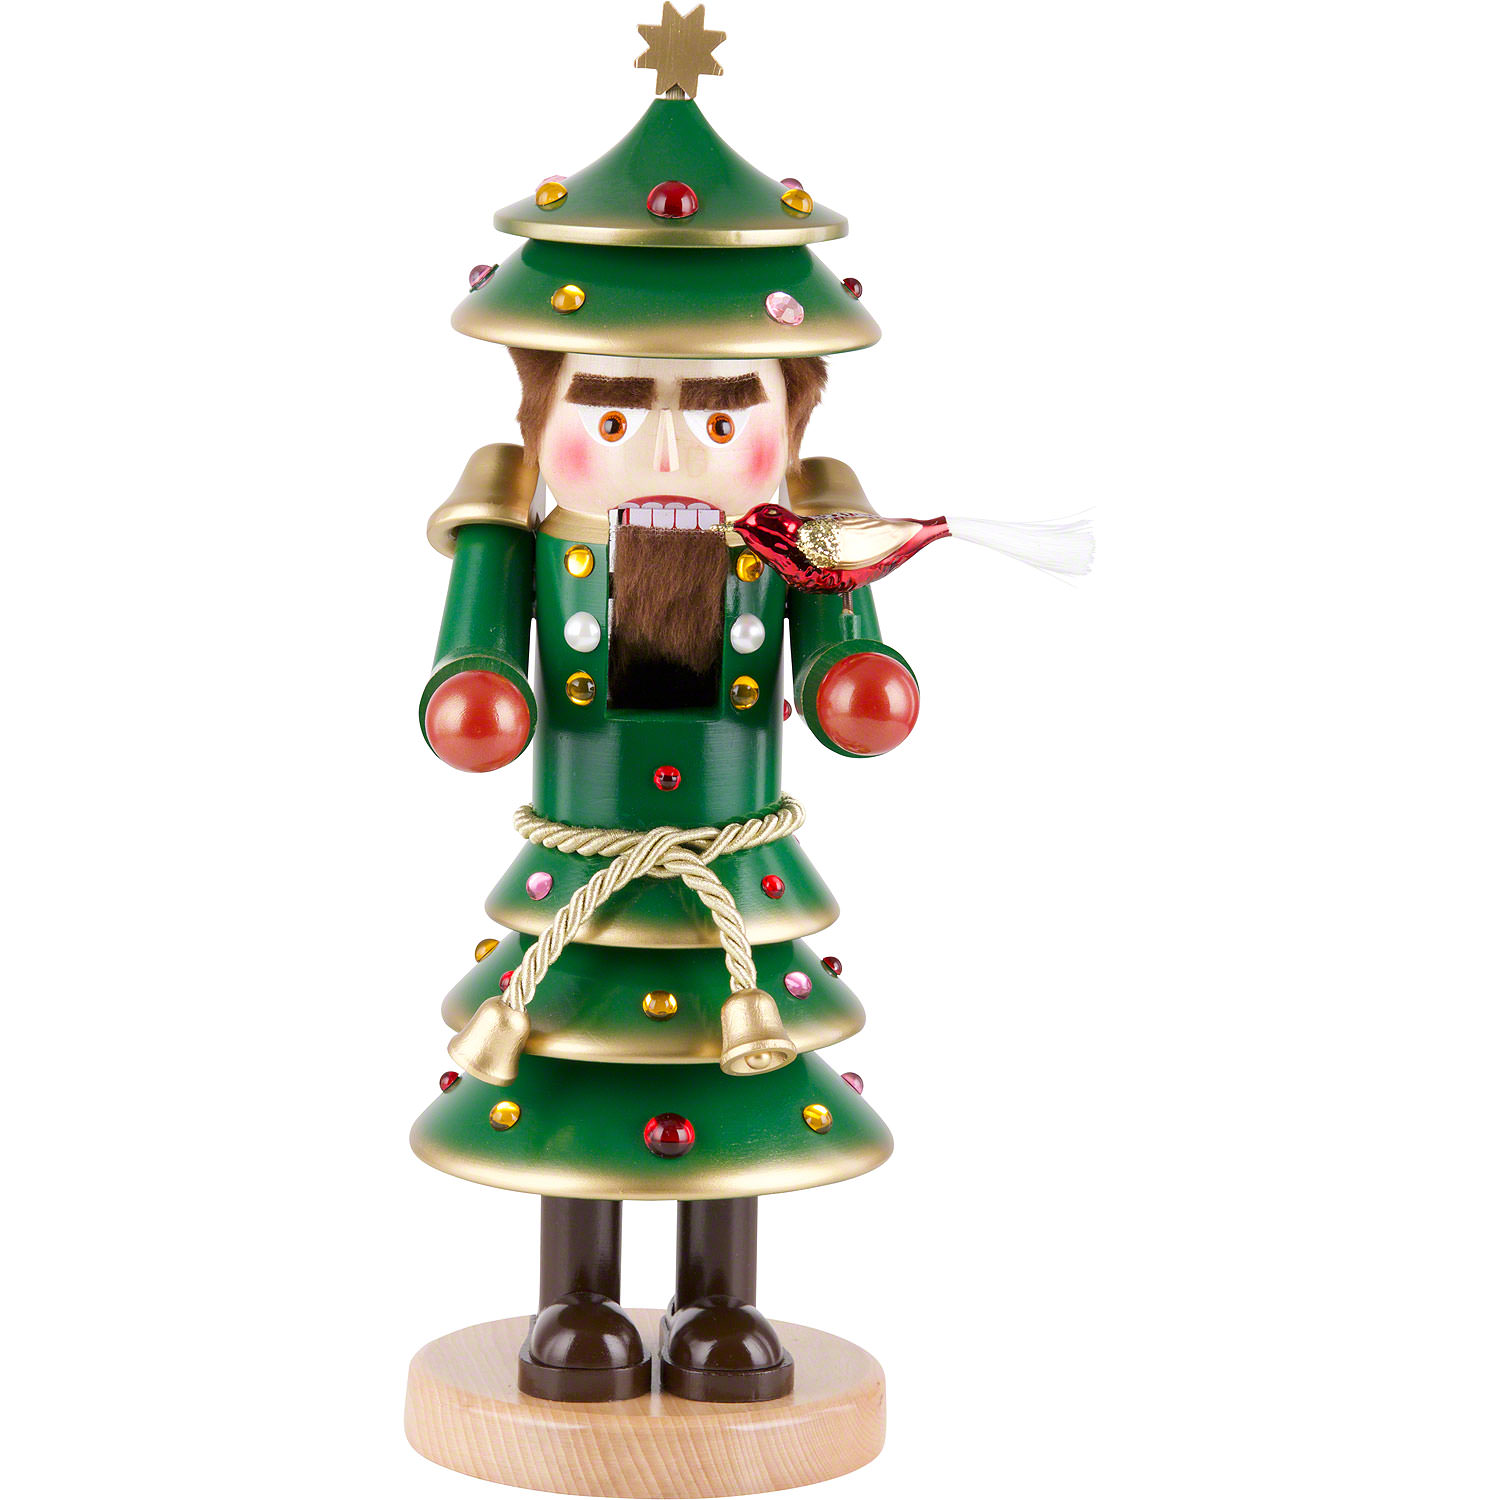 Nutcracker - Christmas Tree (40 cm/16in) by Steinbach Volkskunst